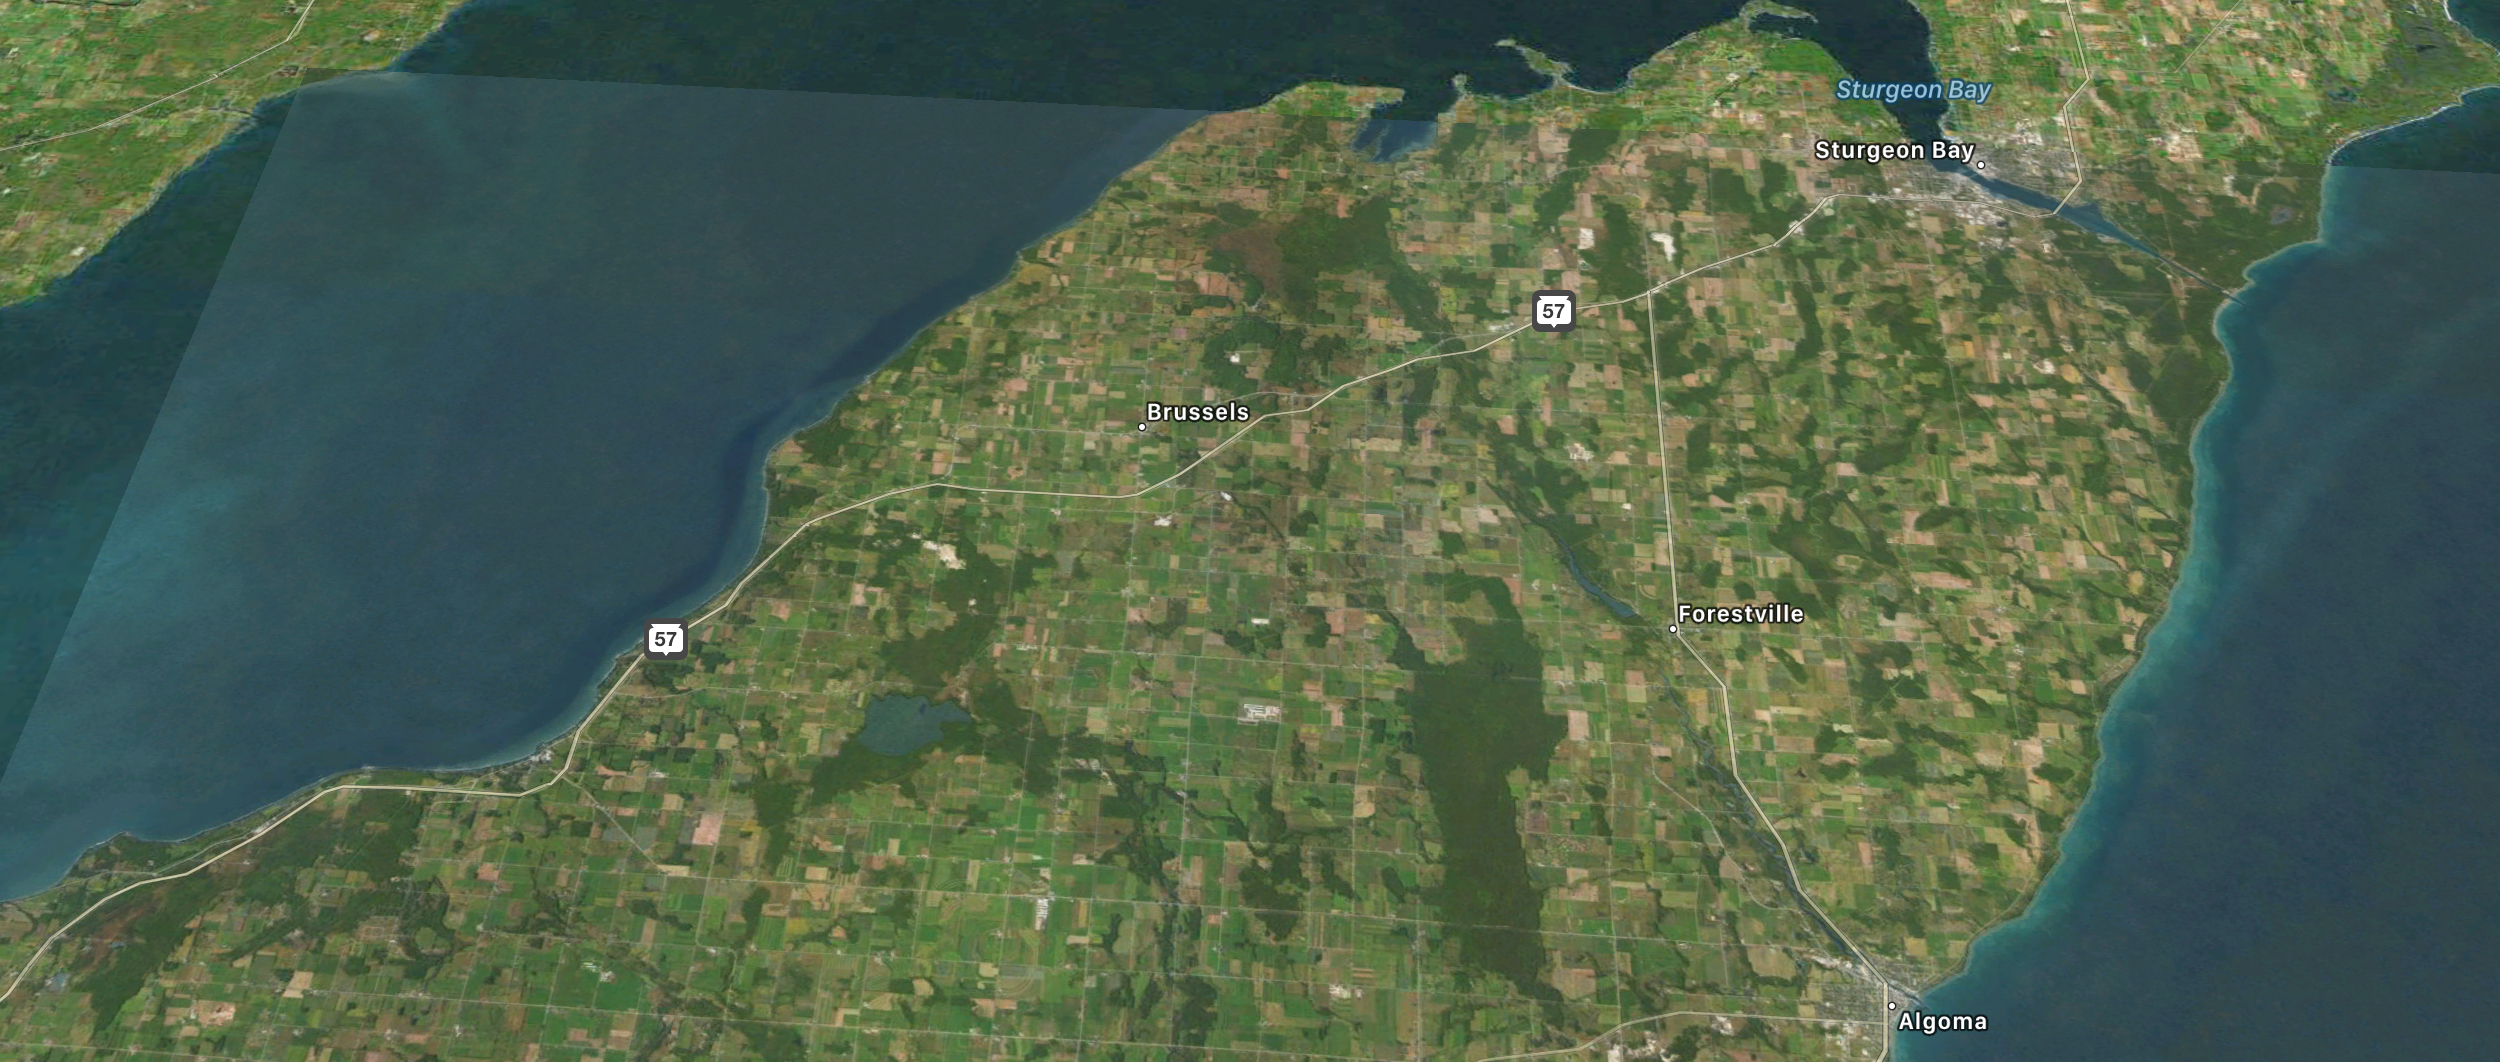 Homes for Sale in Southern Door County WI on map of algoma wi, map of city of madison wi, map of jacksonport wi, map of the fox valley wi, map of black river falls wi, map of ohio by county, map of washington island wi, map of liberty grove wi, map of green bay wi, map of apostle islands wi, map of menomonie wi, map of racine wi, map of de soto wi, map of wisconsin, map of lakewood wi, map of beloit wi, map of peninsula state park wi, map of castle rock lake wi, map of baileys harbor wi,